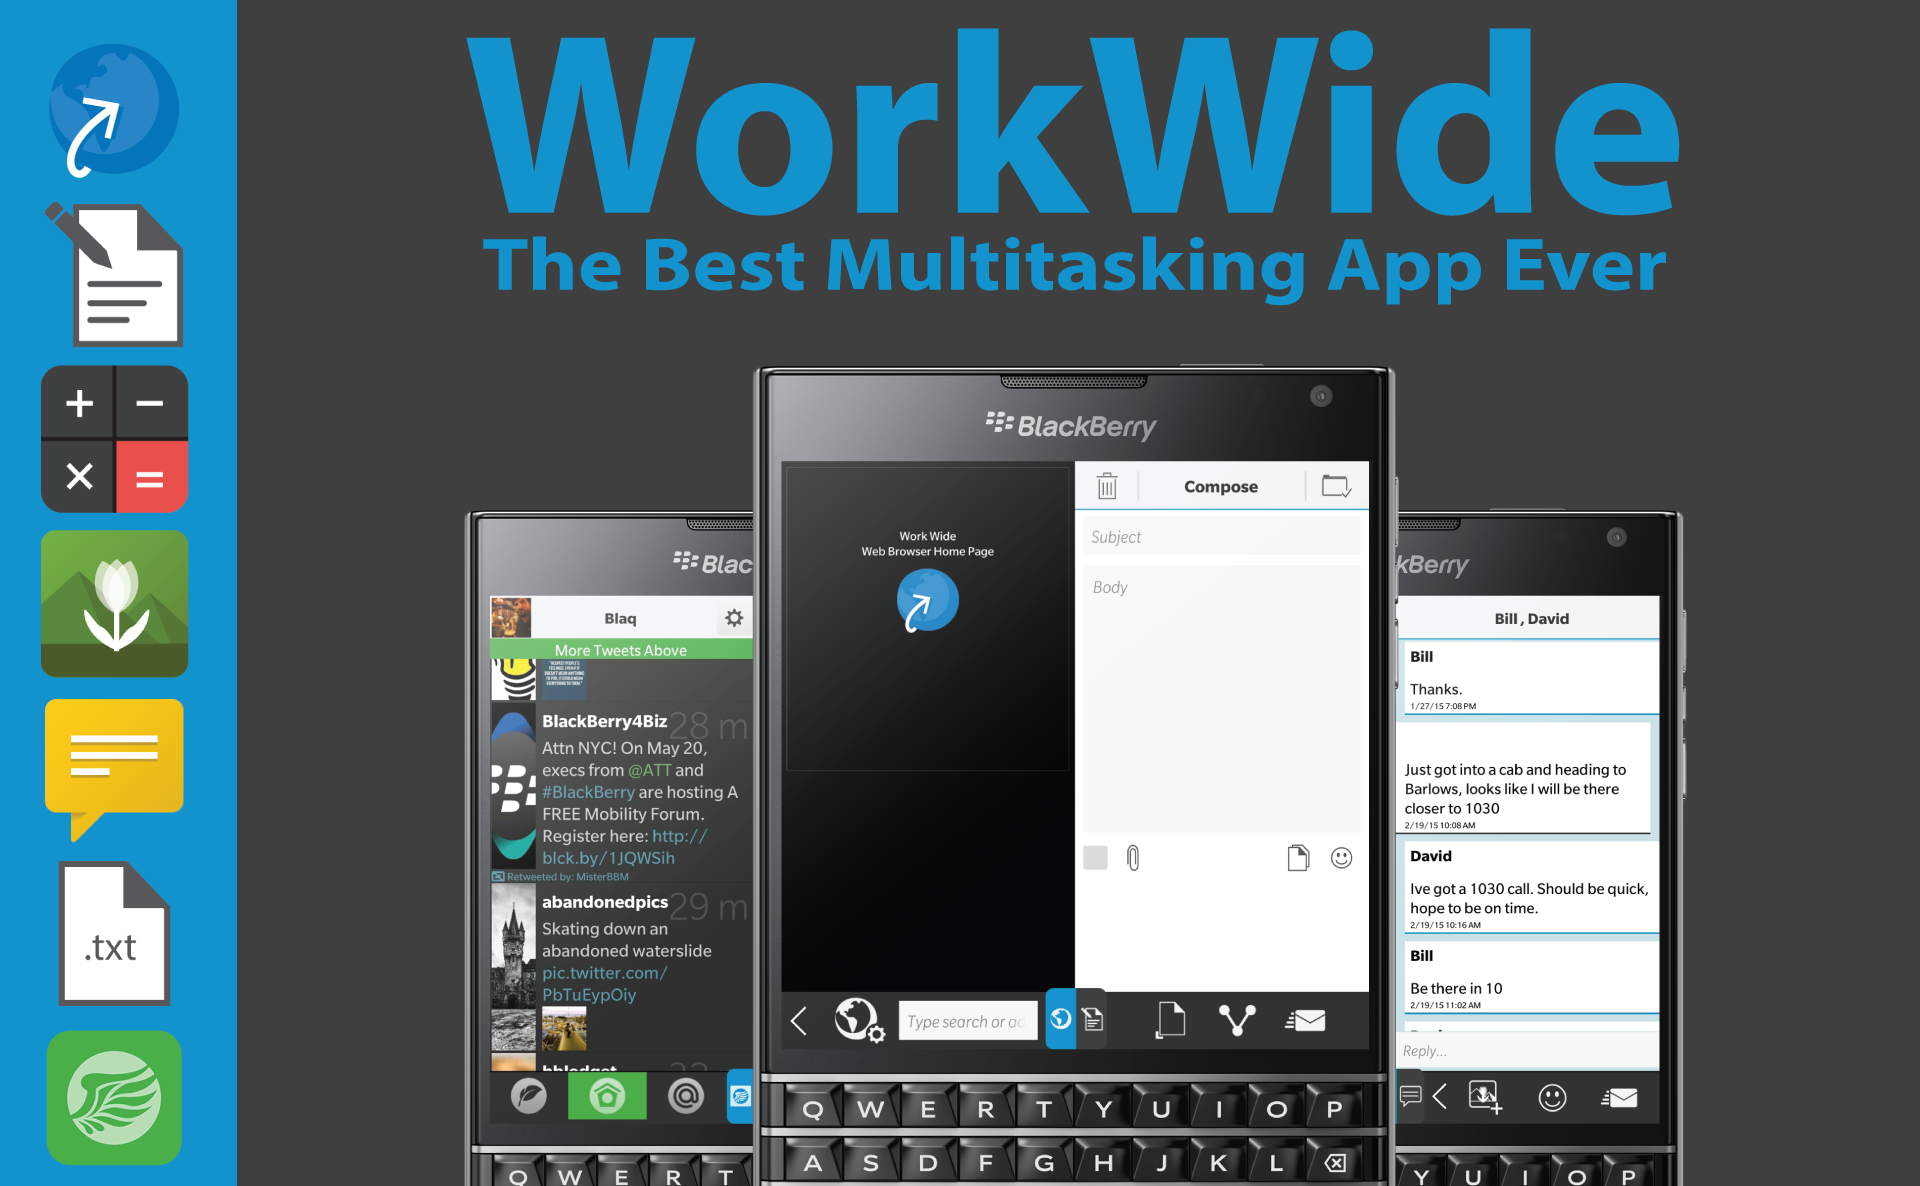 Work Wide v1.3.0.61 update brings multiple bug fixes and improvements